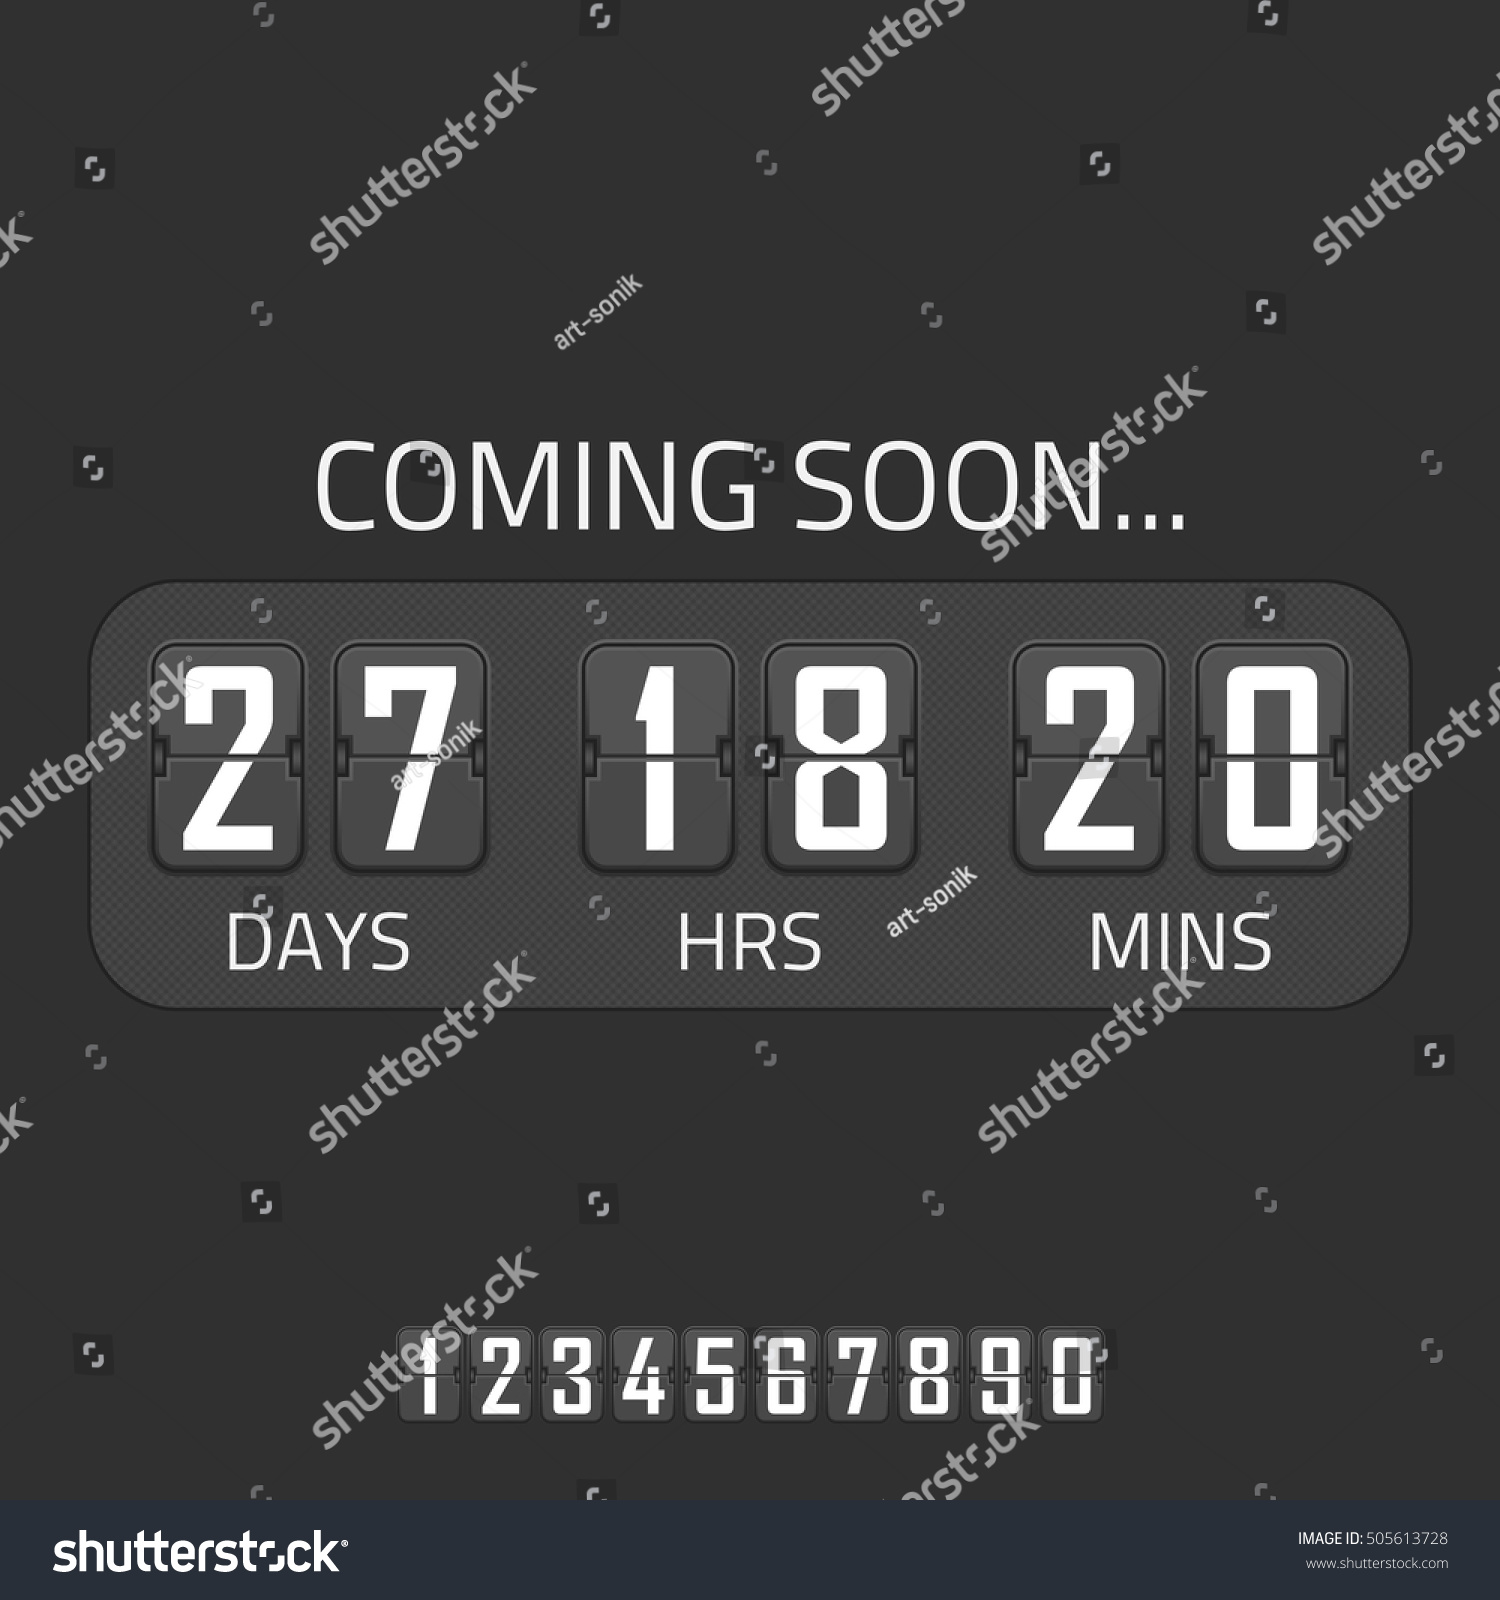 Flip Coming Soon Illustration Countdown Timer Stock Vector Royalty